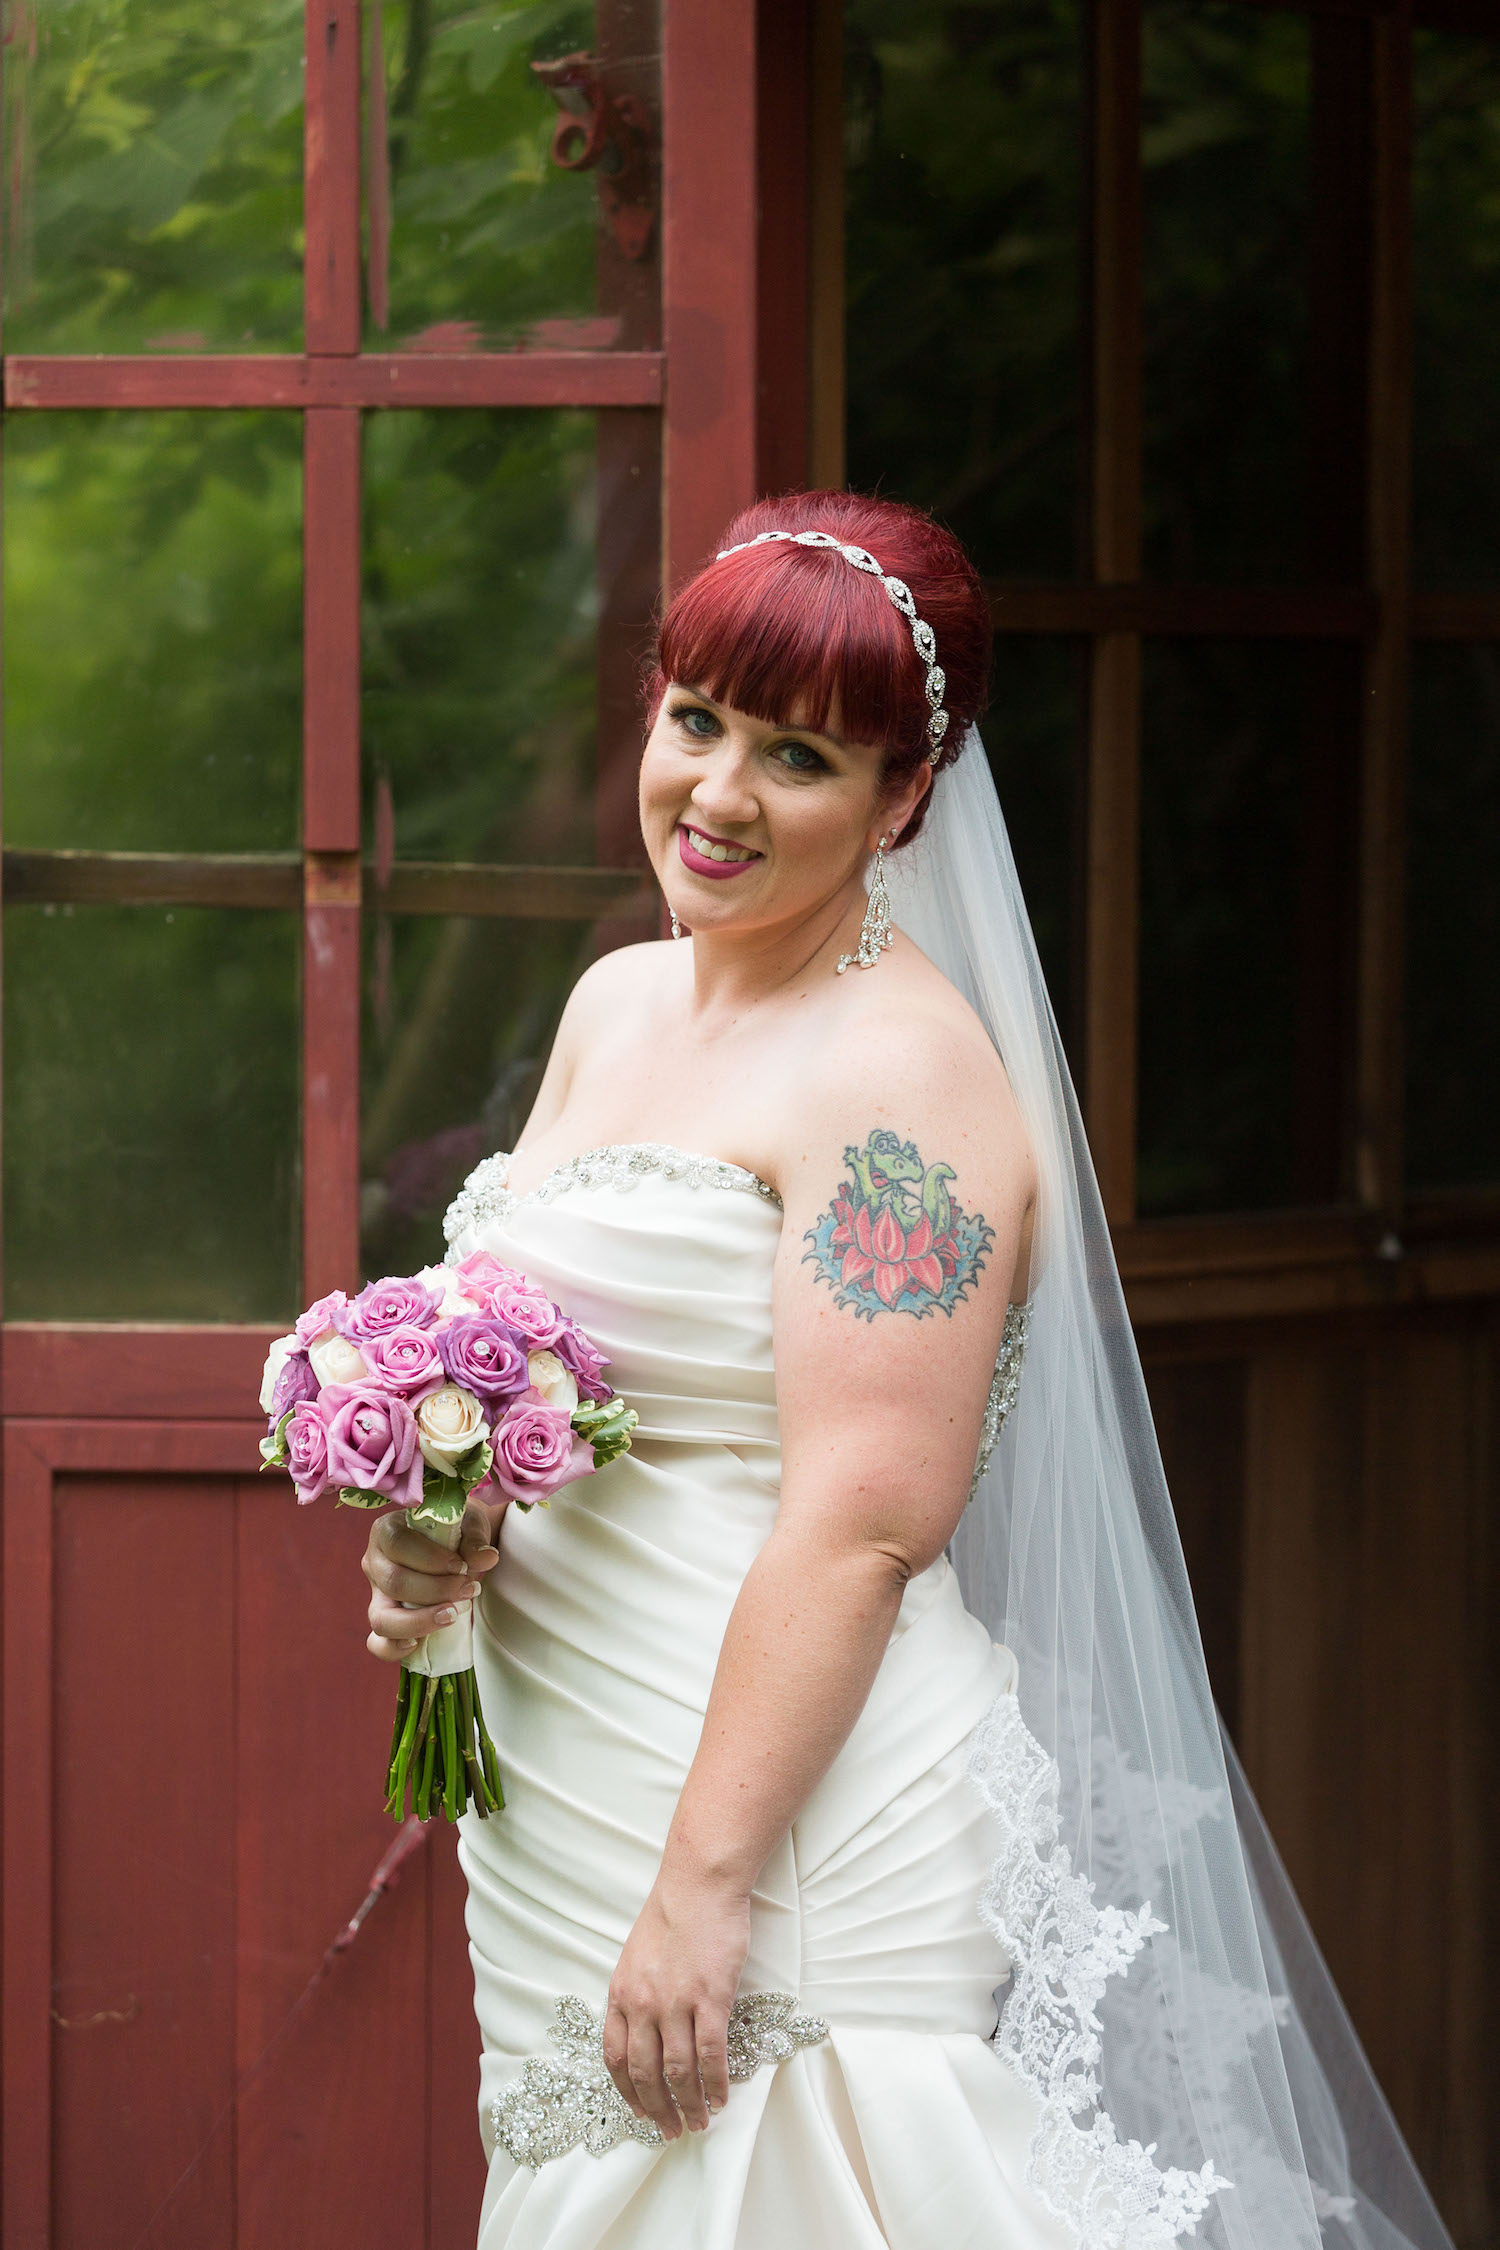 Cindyrella's Garden outdoor ceremony by the lake with a redhead bride, small rose bouquet pink and white, shoulder tattoo